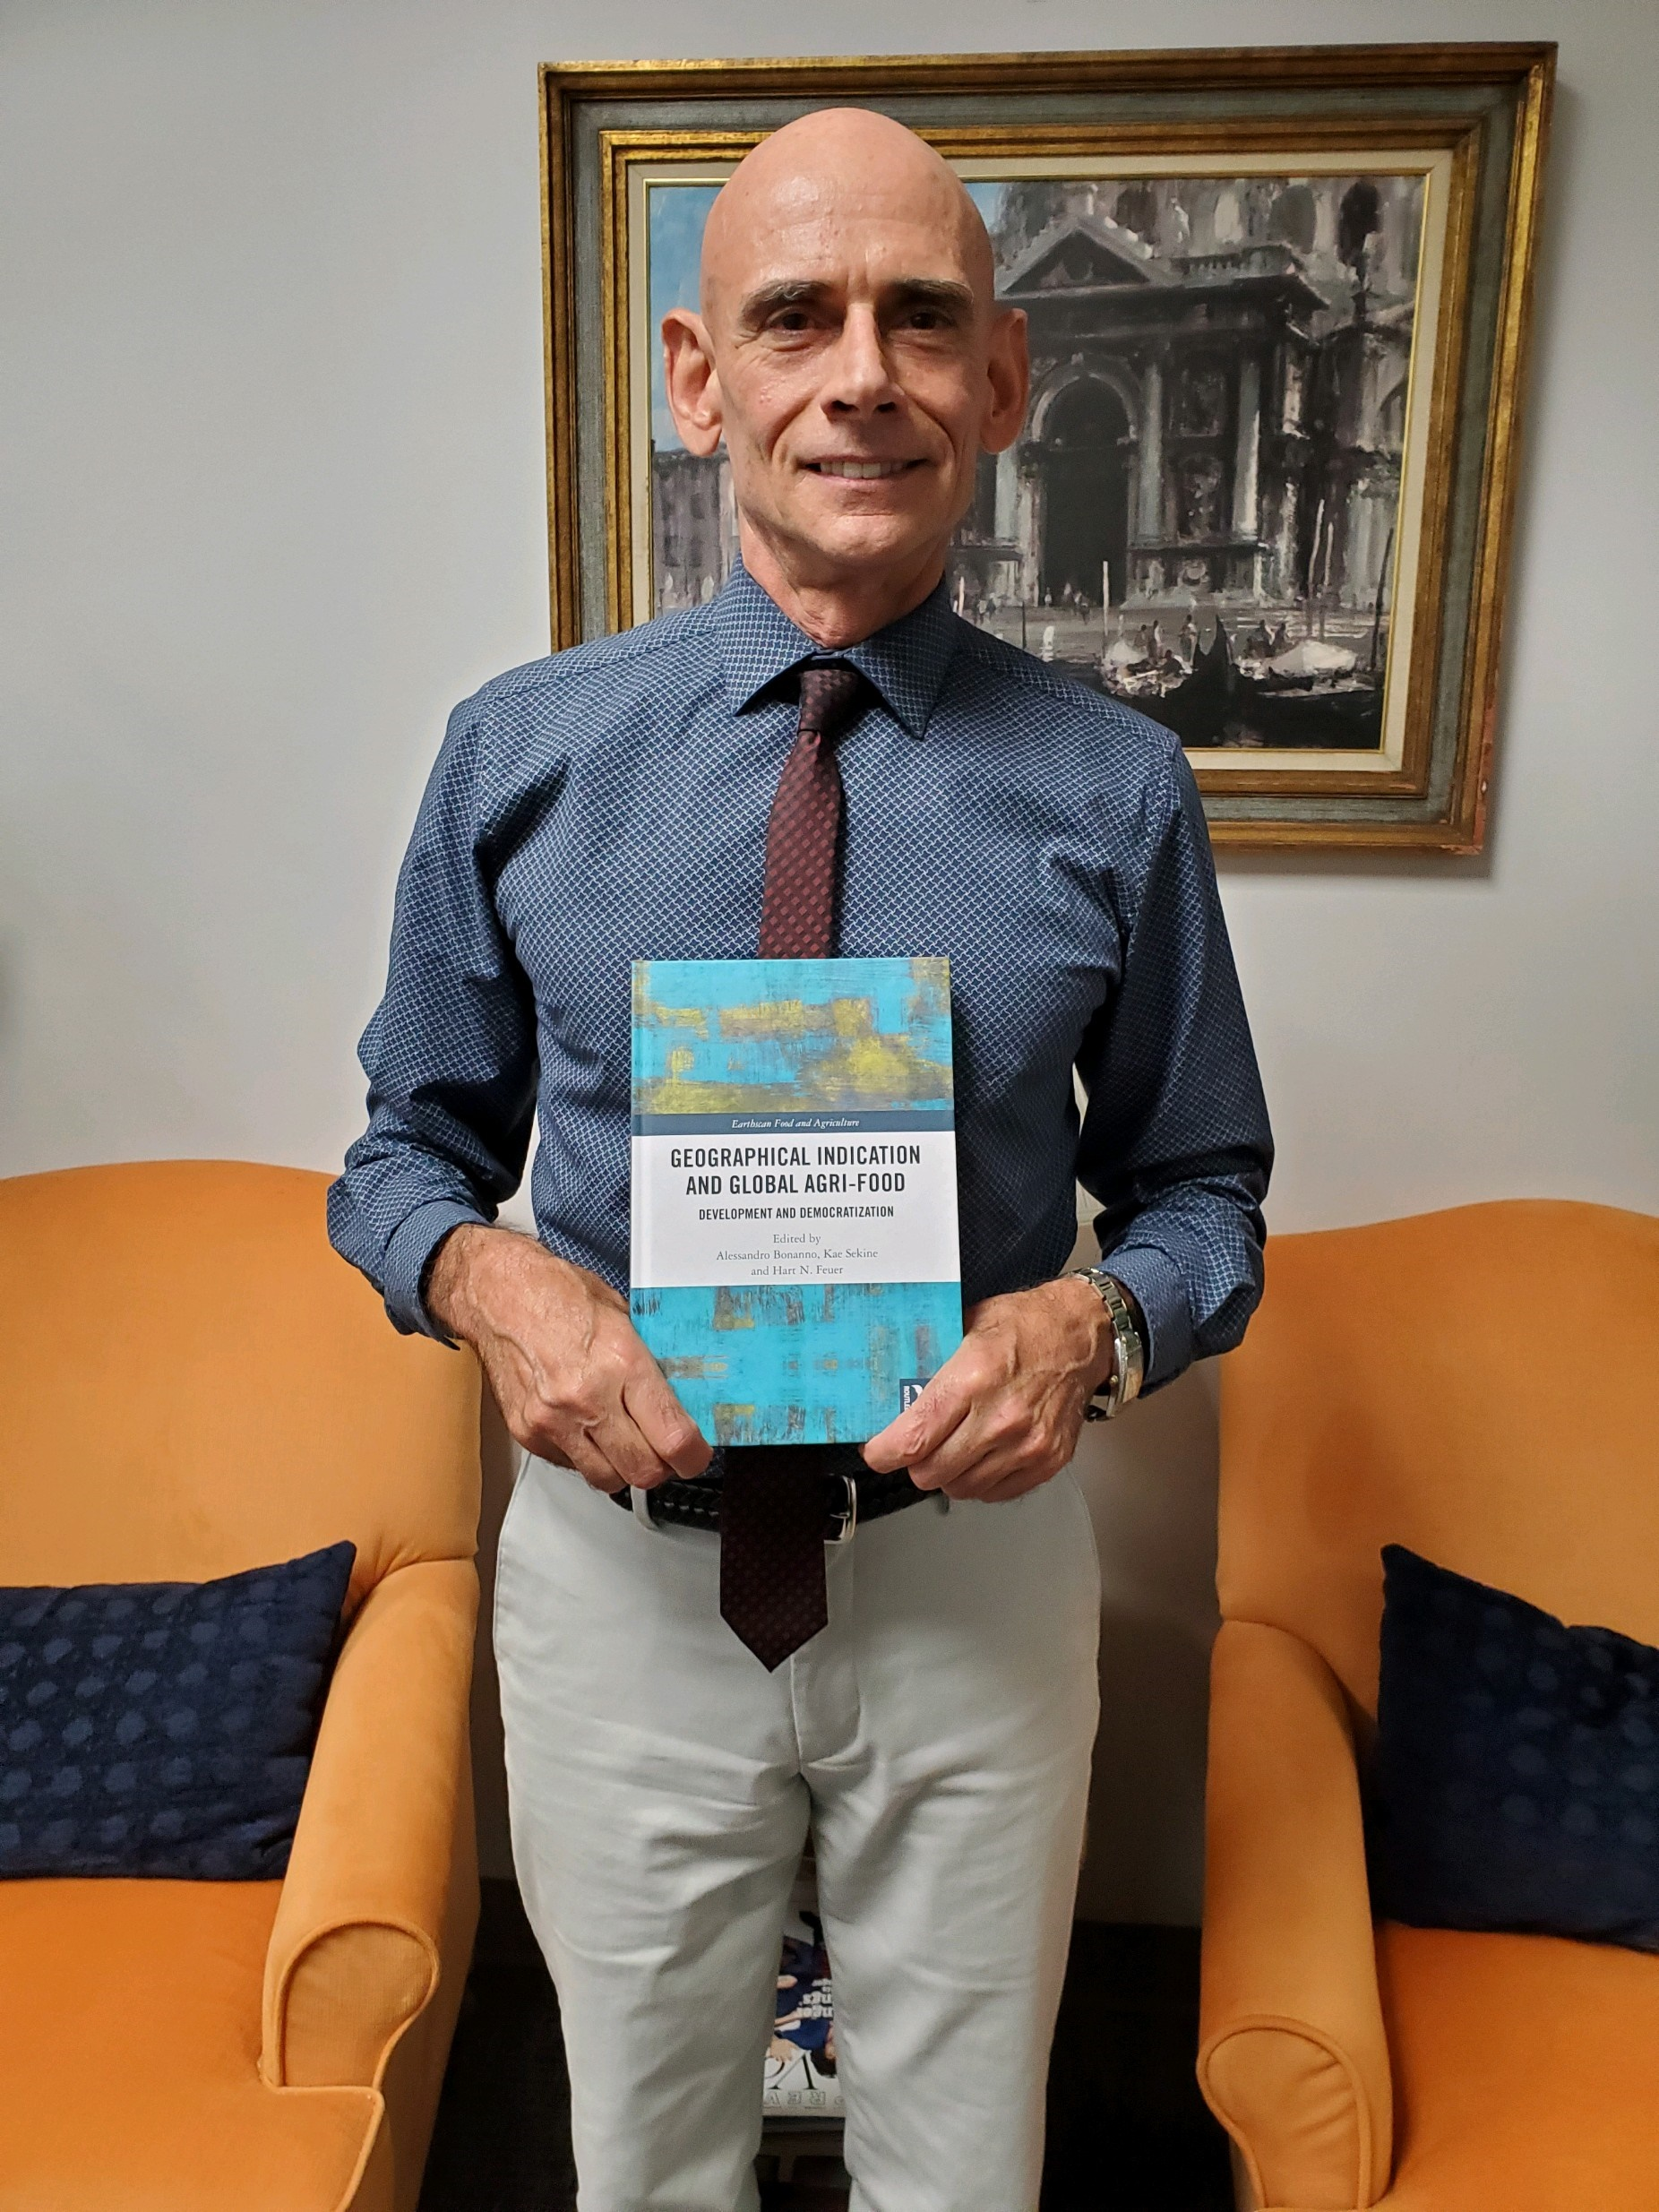 Dr. Alessandro Bonanno and recent publication